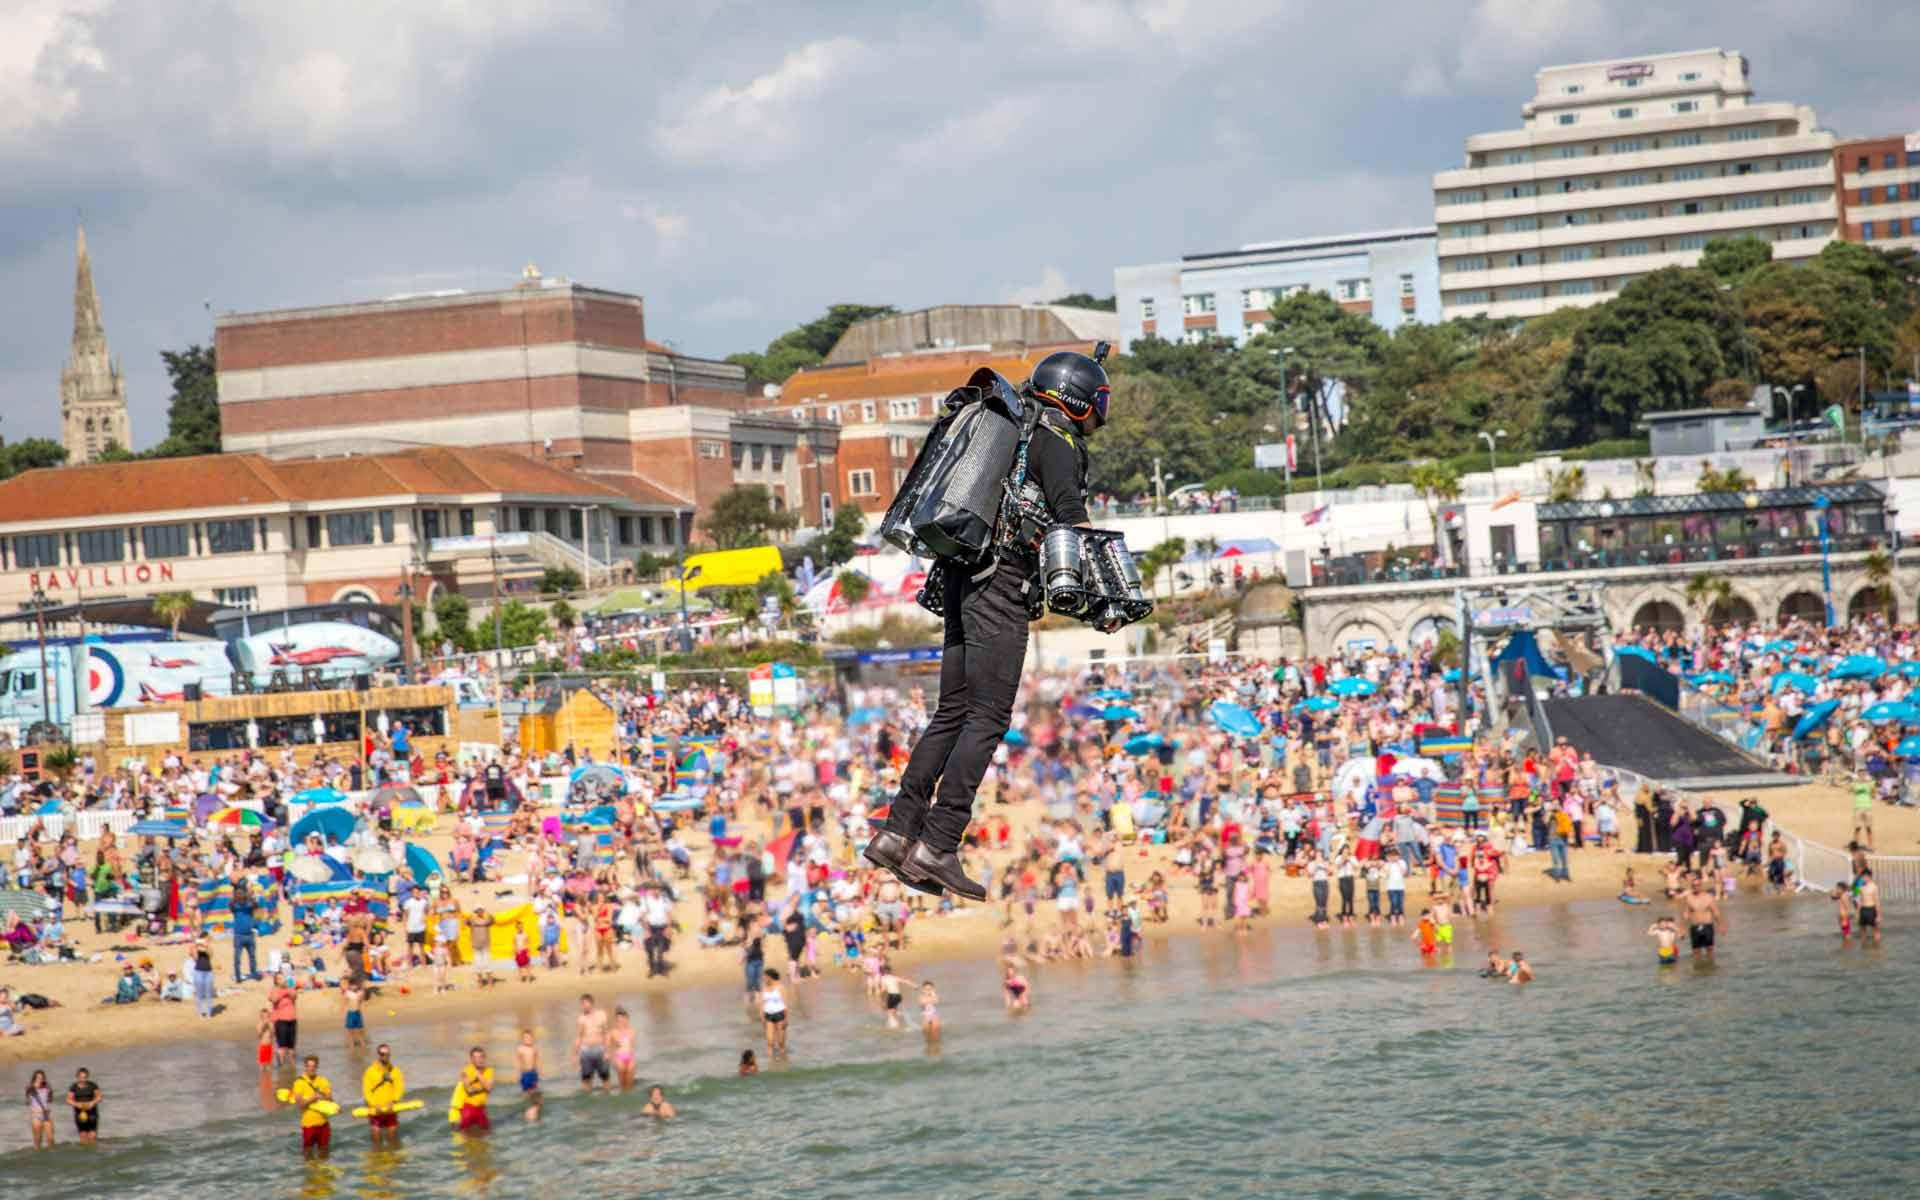 Man flying in front of crowds at Bournemouth beach